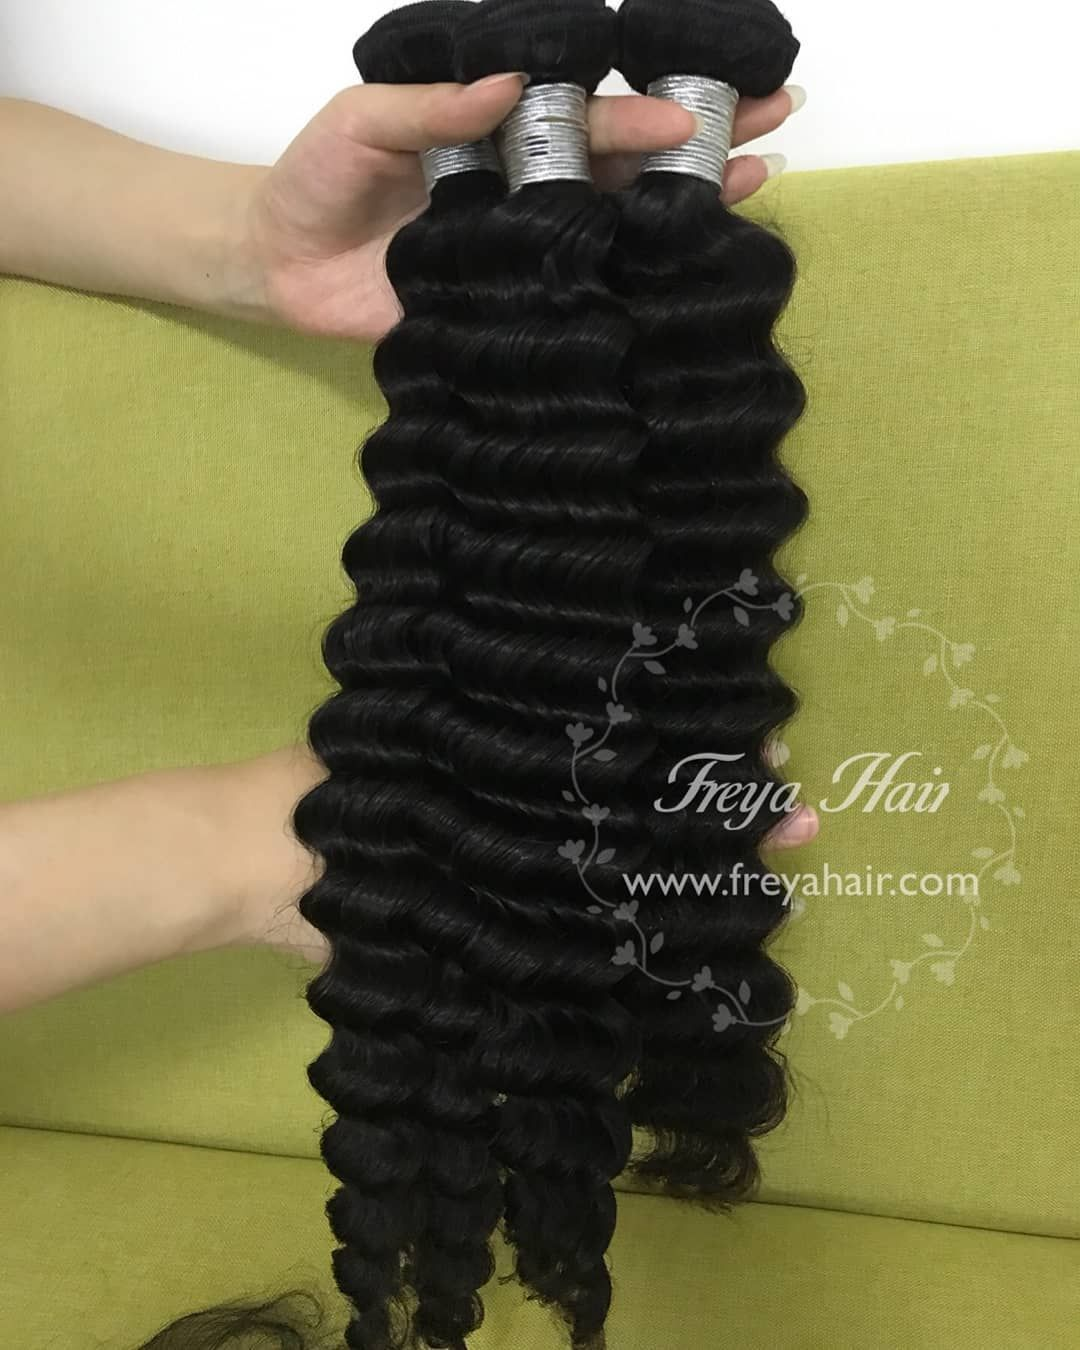 New The 10 Best Hairstyles With Pictures 15 Whatsapp8615066245071 Dm For The Wholesale Price Dhl Fedex World Wholesale Hair Indian Hairstyles Texas Hair